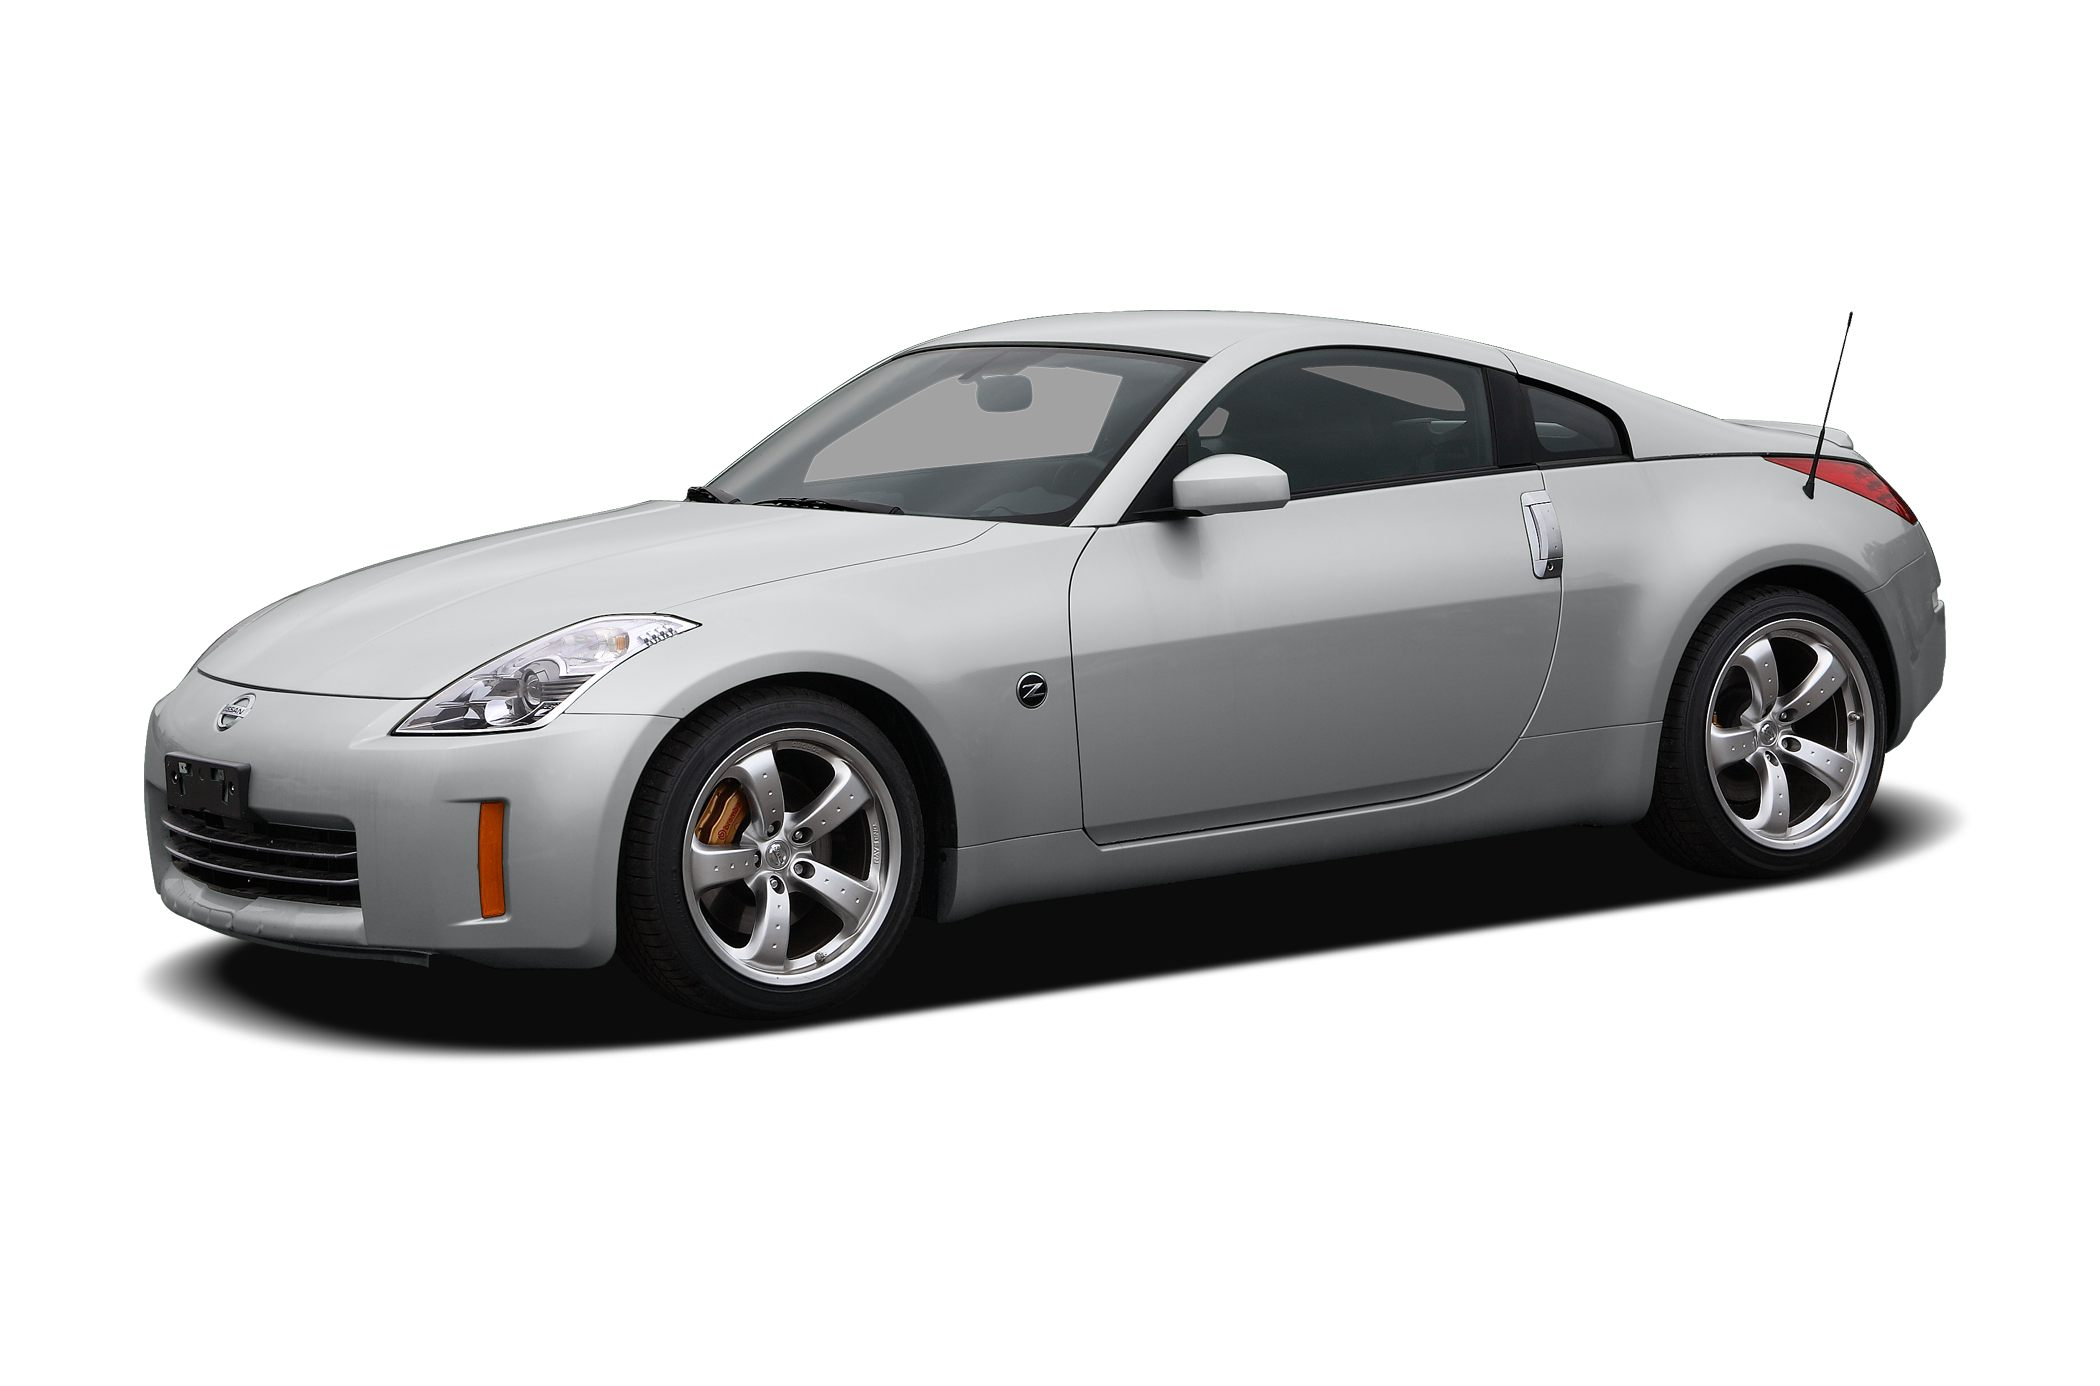 2006 Nissan 350Z Enthusiast Coupe for sale in Stockton for $11,999 with 130,410 miles.